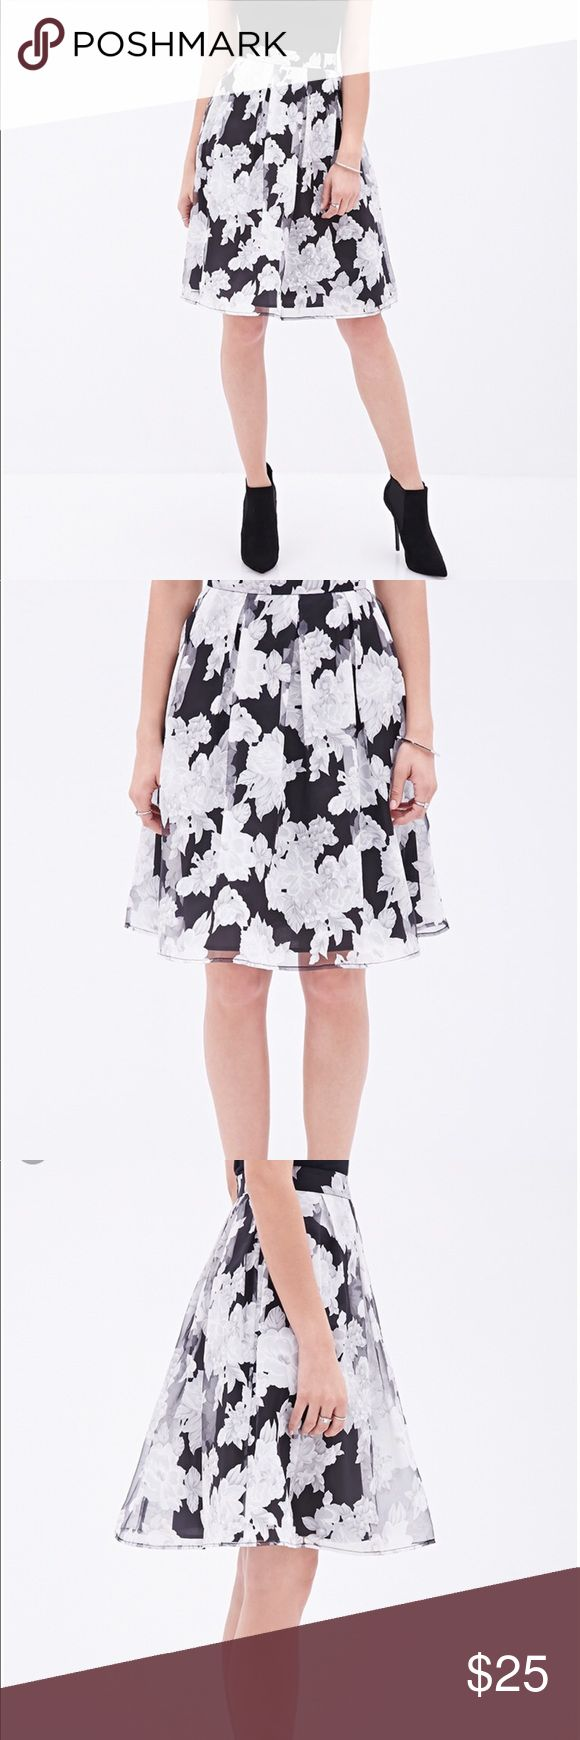 Floral A Line Skirt Beautiful a-line skirt! Perfect for formal events or dress it down with a cute T-shirt  Sheer overlay of white/gray/silver flowers Plated at waist Zip and clasp in back Forever 21 Skirts A-Line or Full